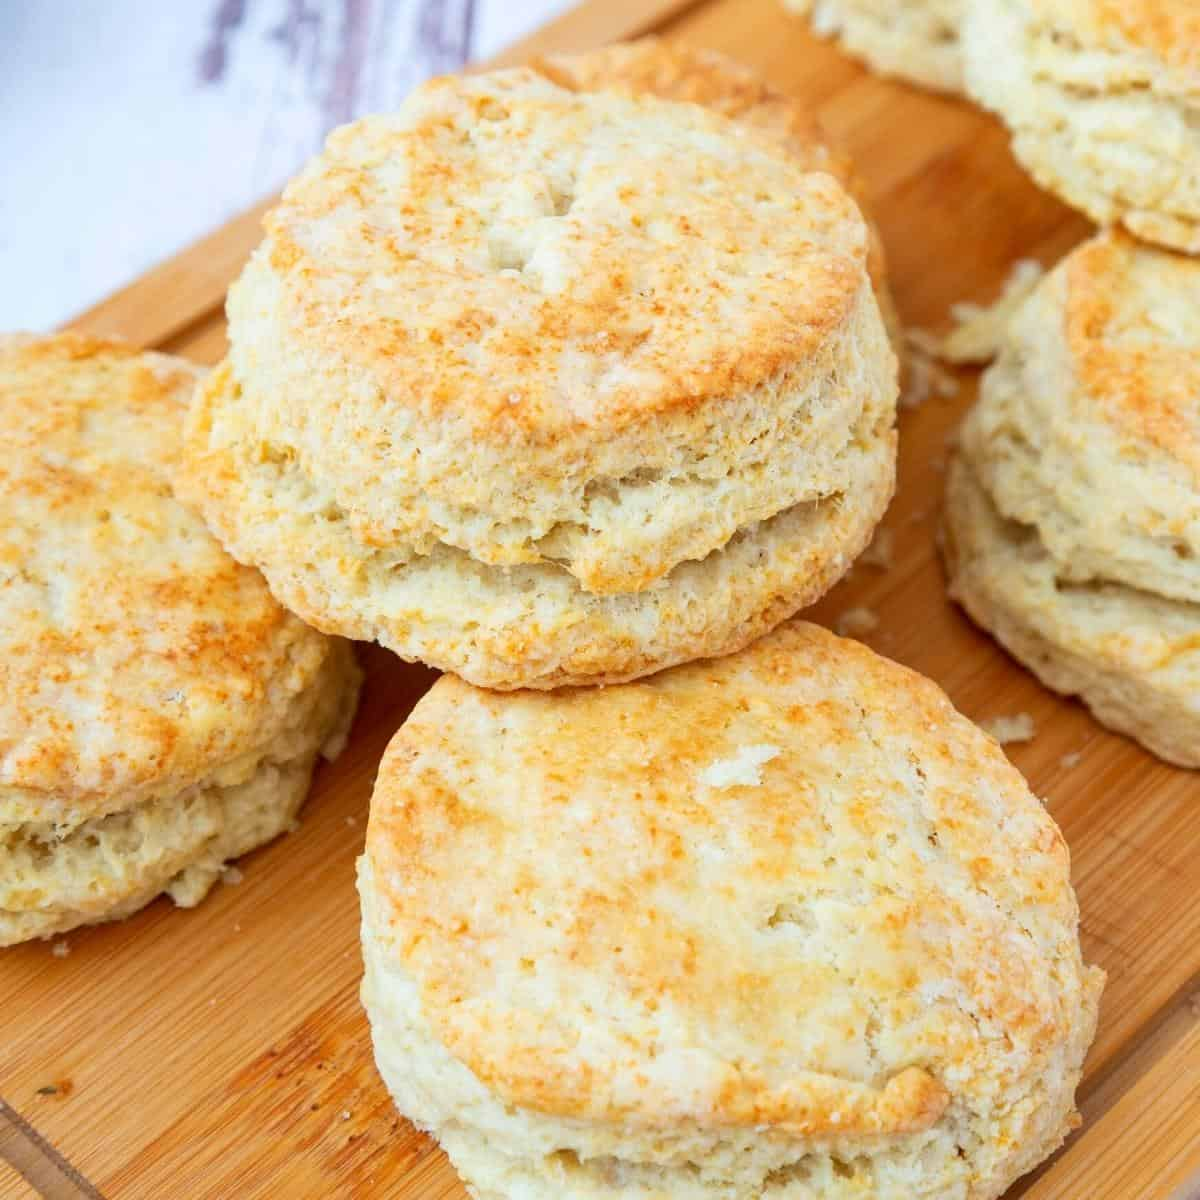 Biscuits o a wooden board.